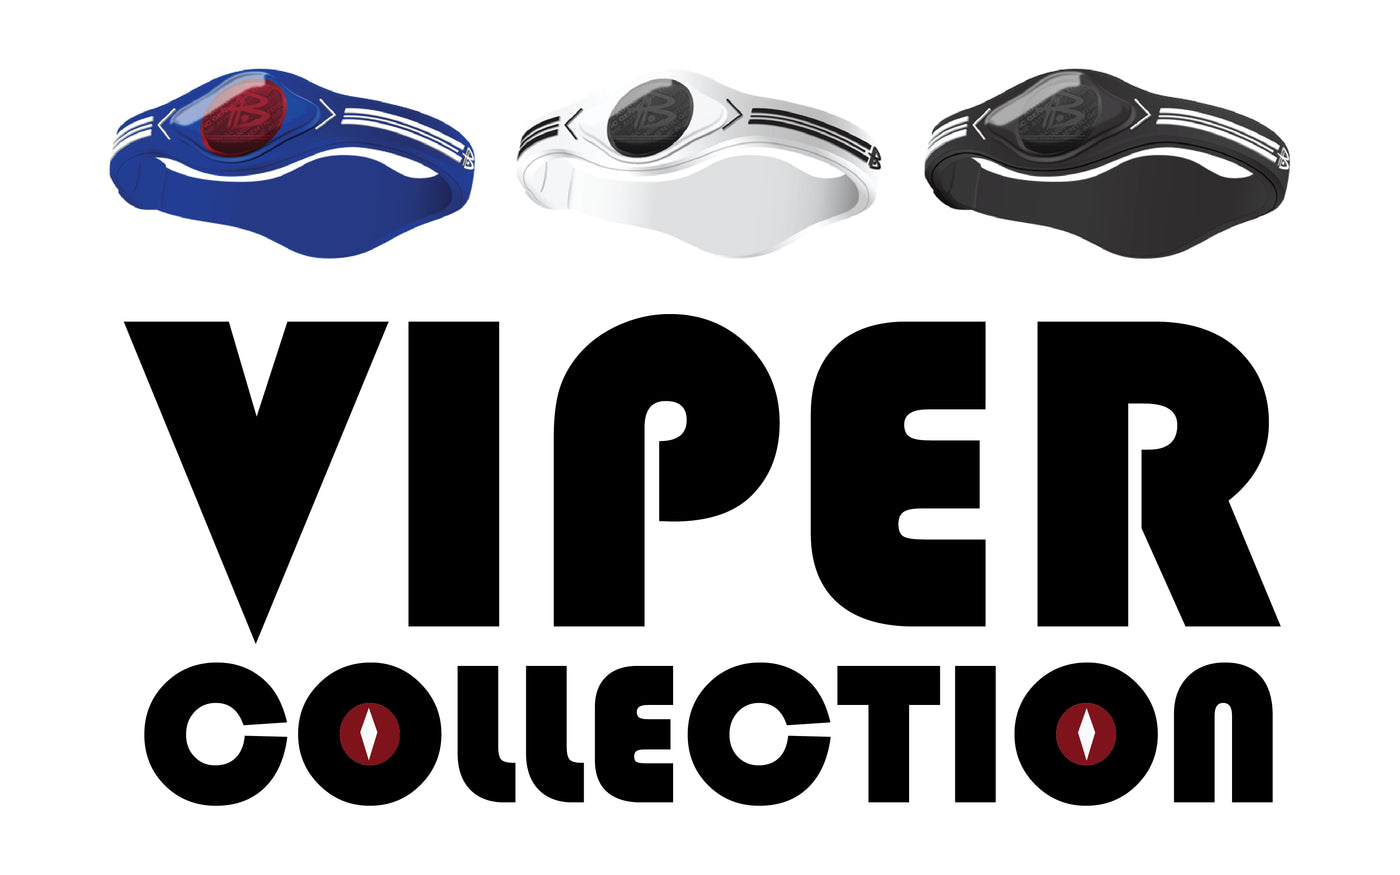 The Viper Collection Features Three Stripes and is Crafted from 100/% Surgical Grade Silicone. Power Balance Taking Inspiration from The Fast Lines and Stripes from Sports Viper